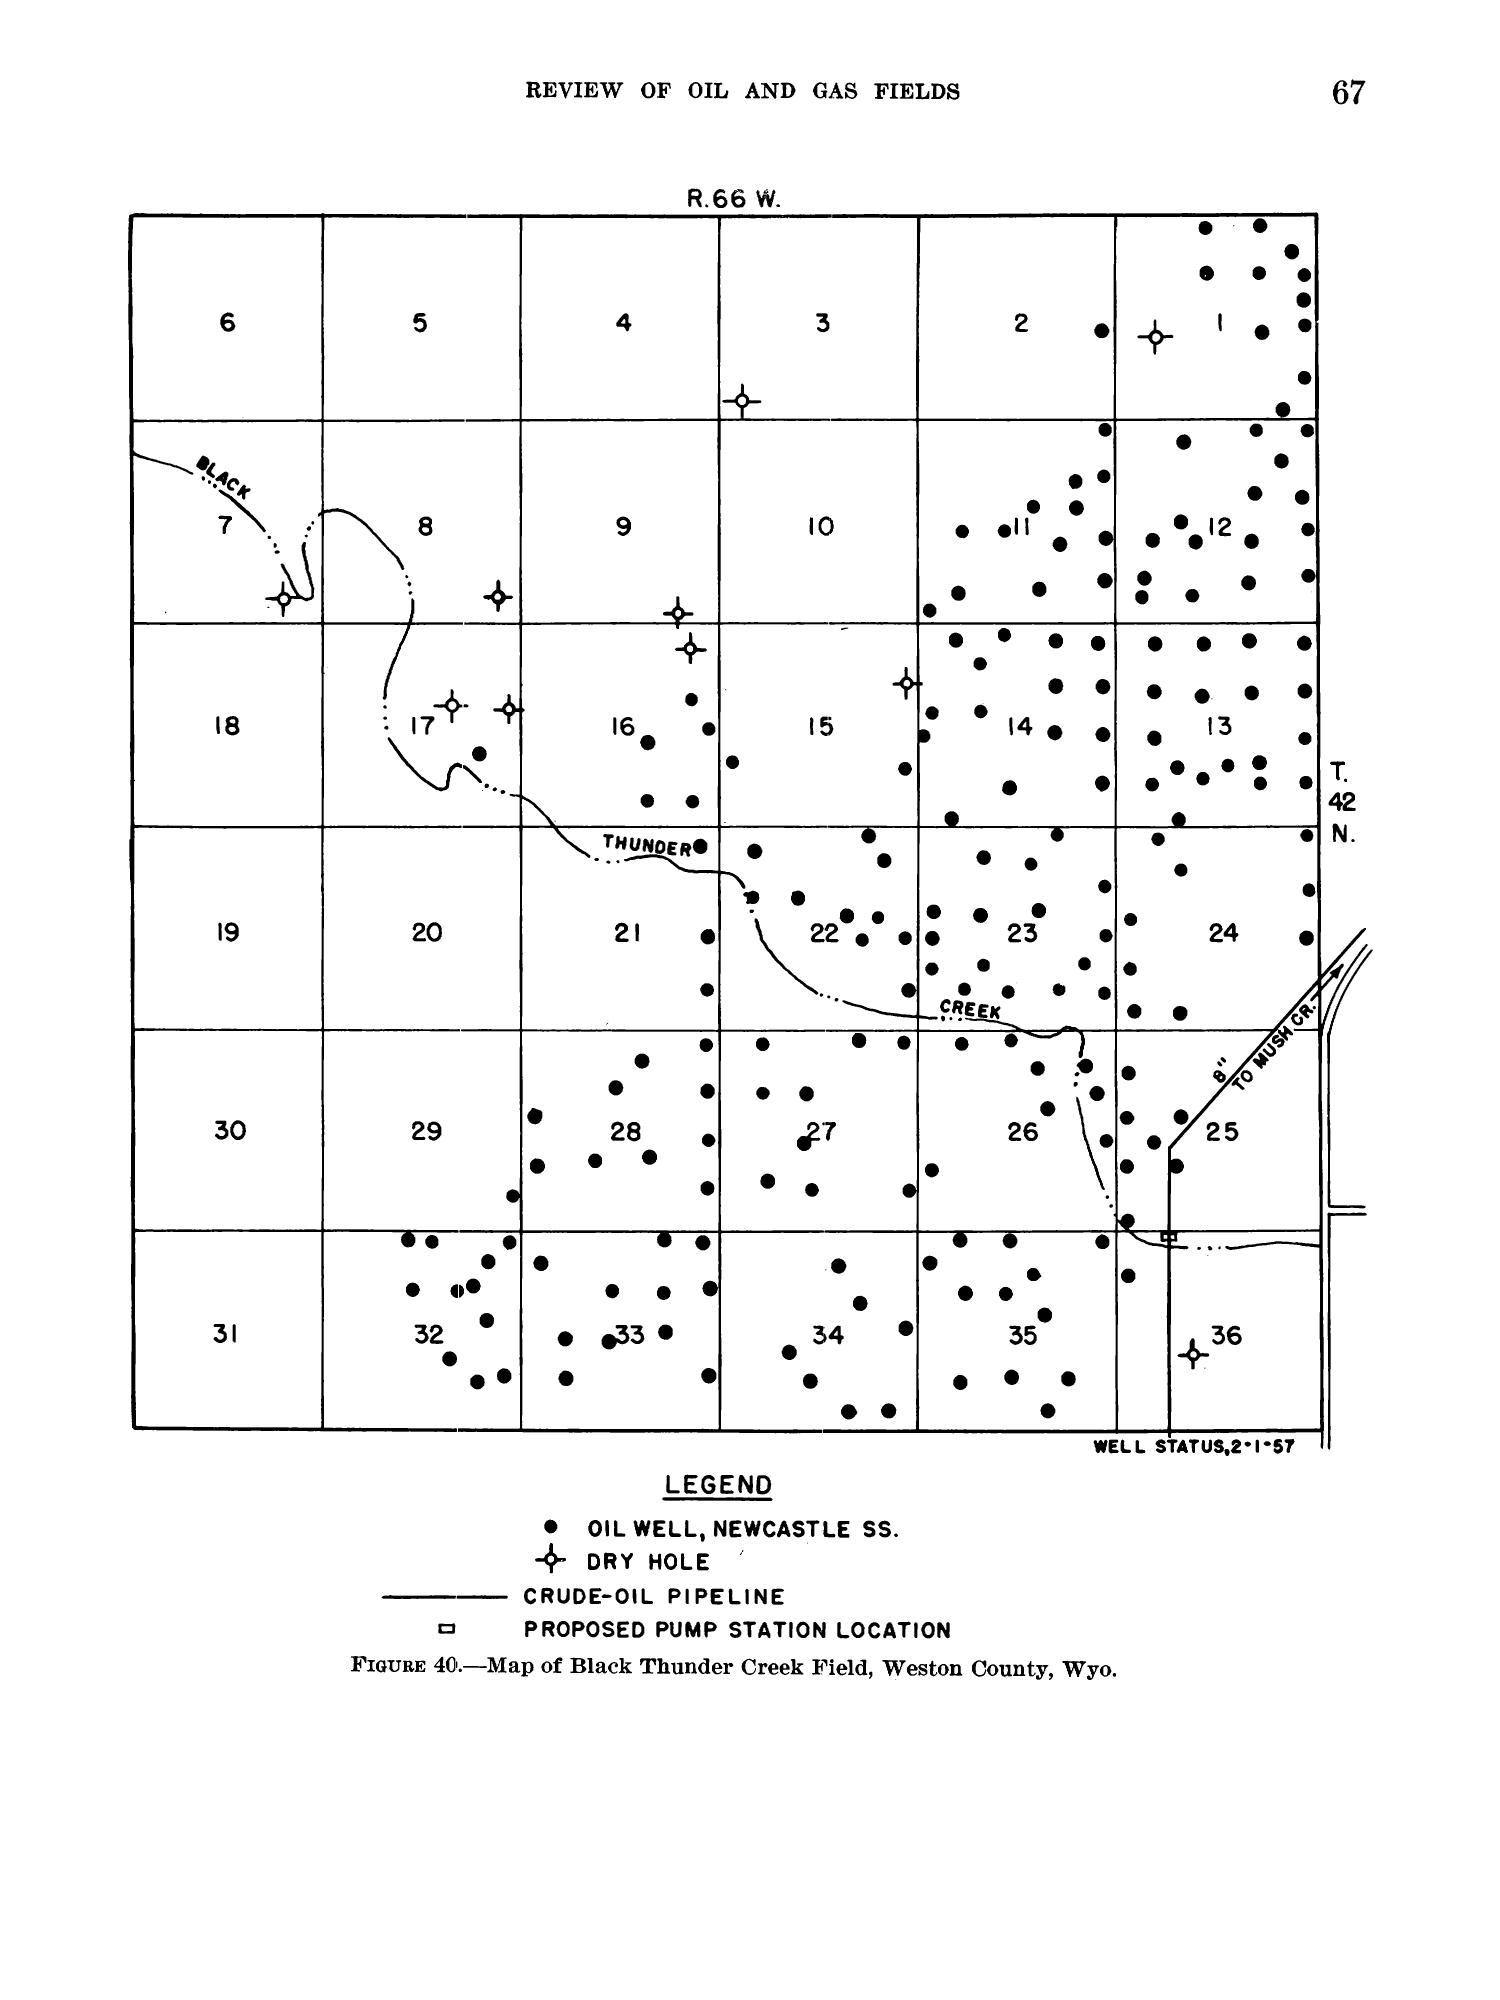 Petroleum and Natural Gas Fields in Wyoming                                                                                                      67